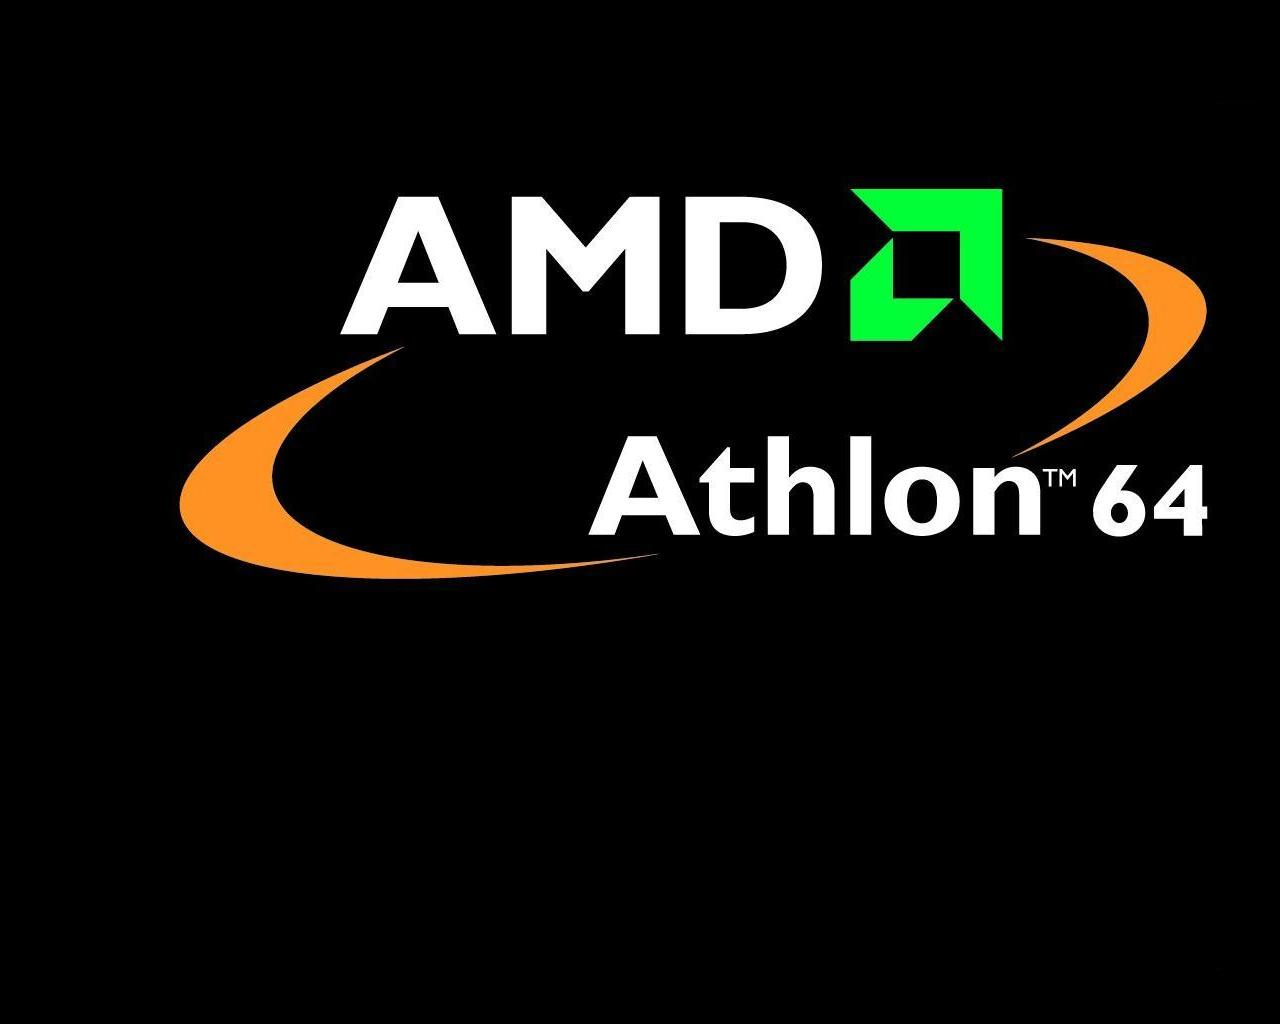 amd wallpapers teamstealth - photo #9